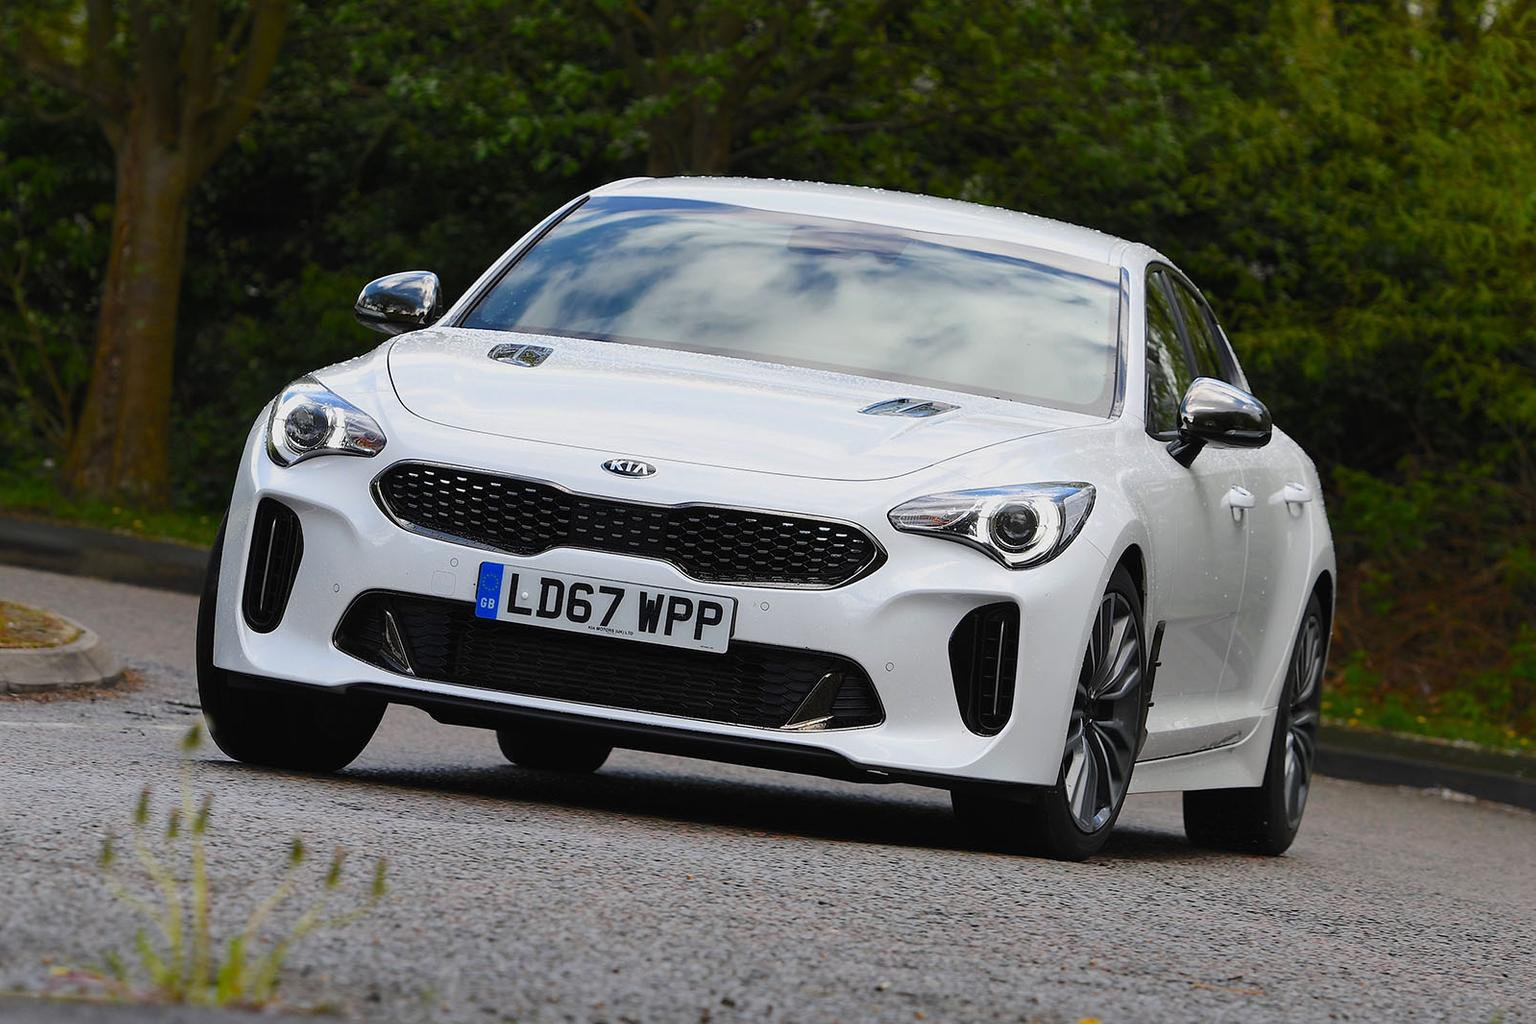 2018 Kia Stinger 2.0T-GDI review - verdict